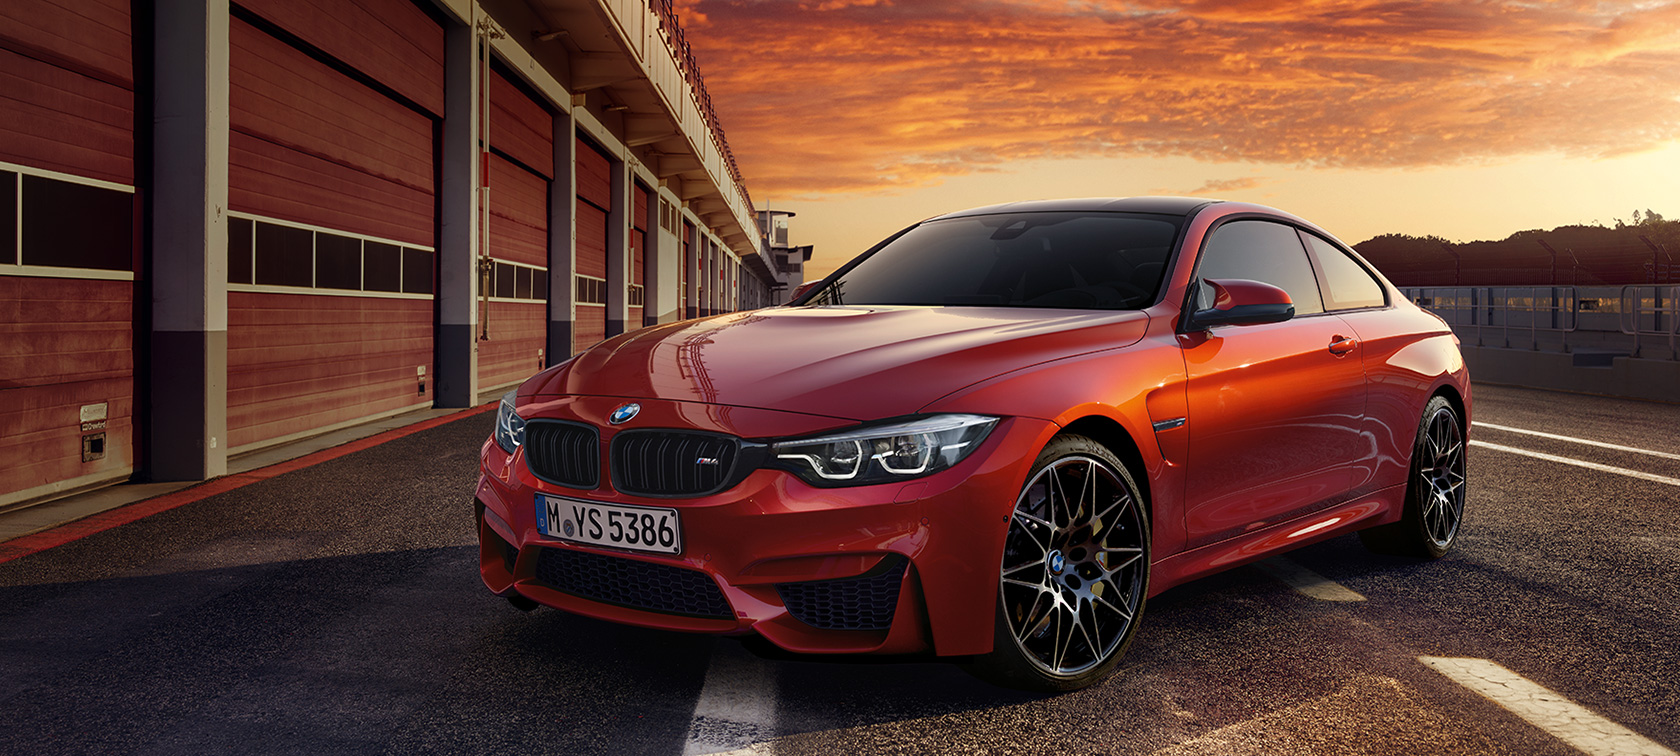 Bmw M4 Coupe Design Bmw South Africa